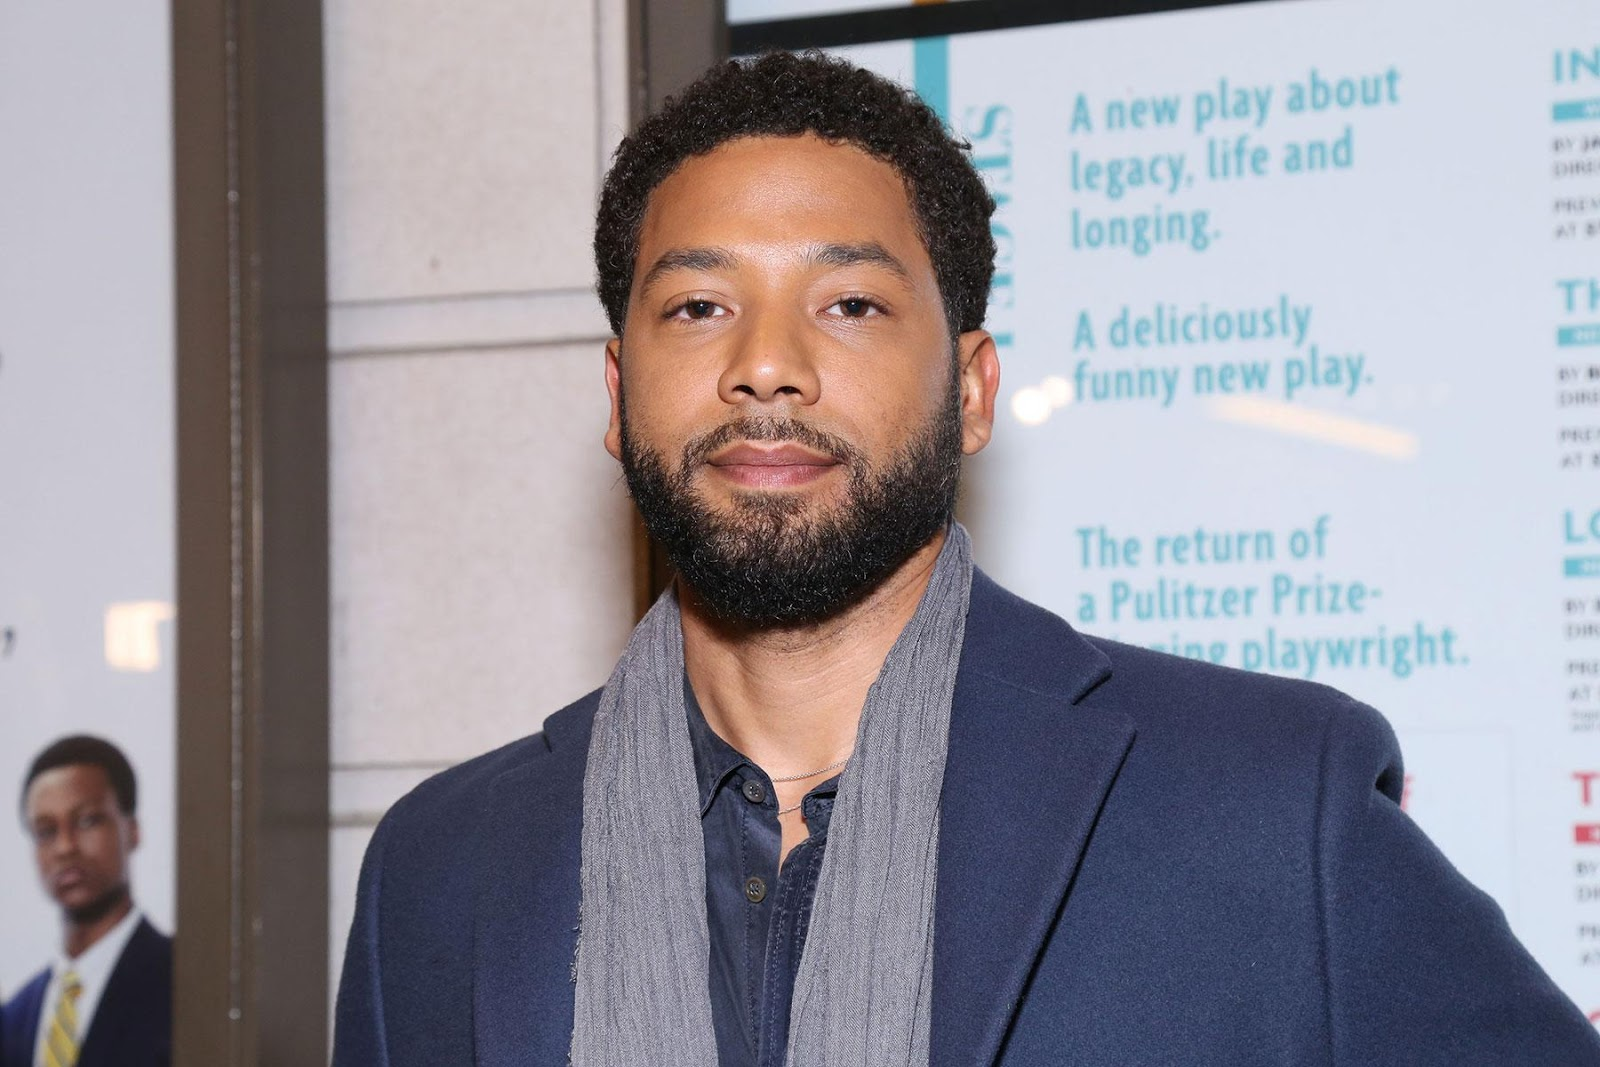 Jussie Smollett won't be returning for the final episode of Empire